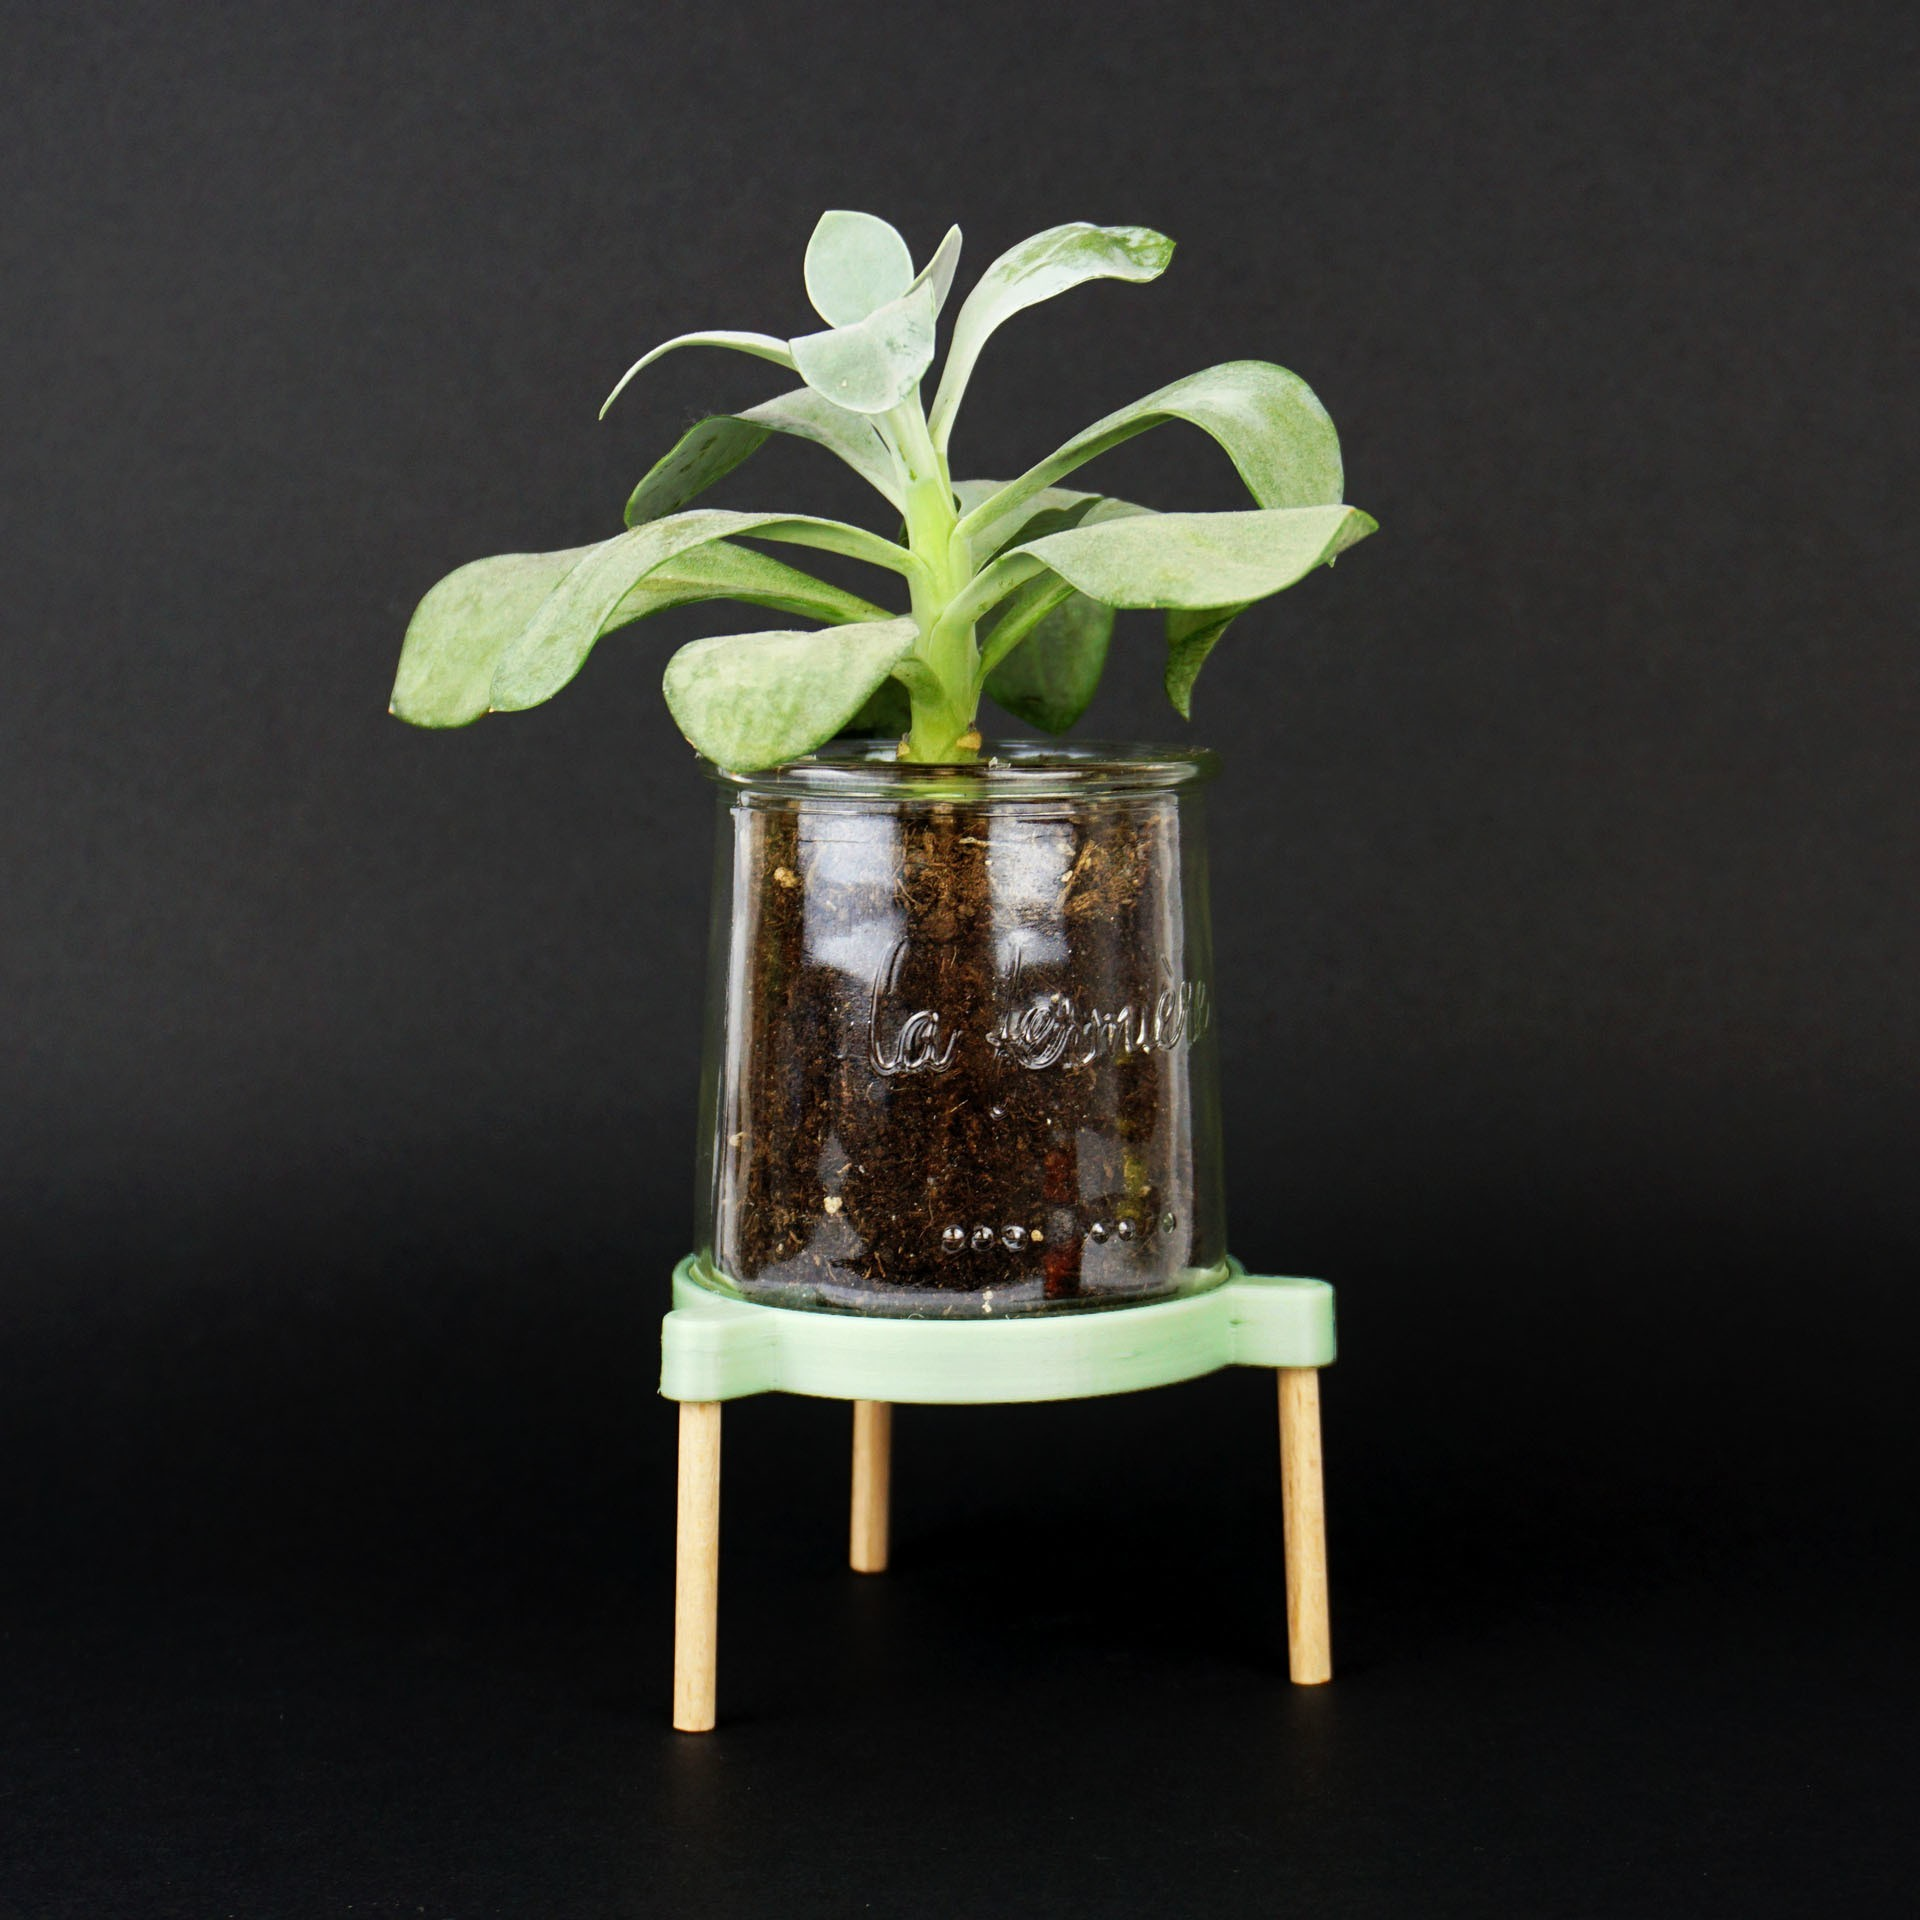 Shooting Pot coupelle - 2018 05 09 - 4.jpg Download STL file Tripod support for receiving a plant in a glass pot • 3D printable model, Jonathan-AtelierVOUS